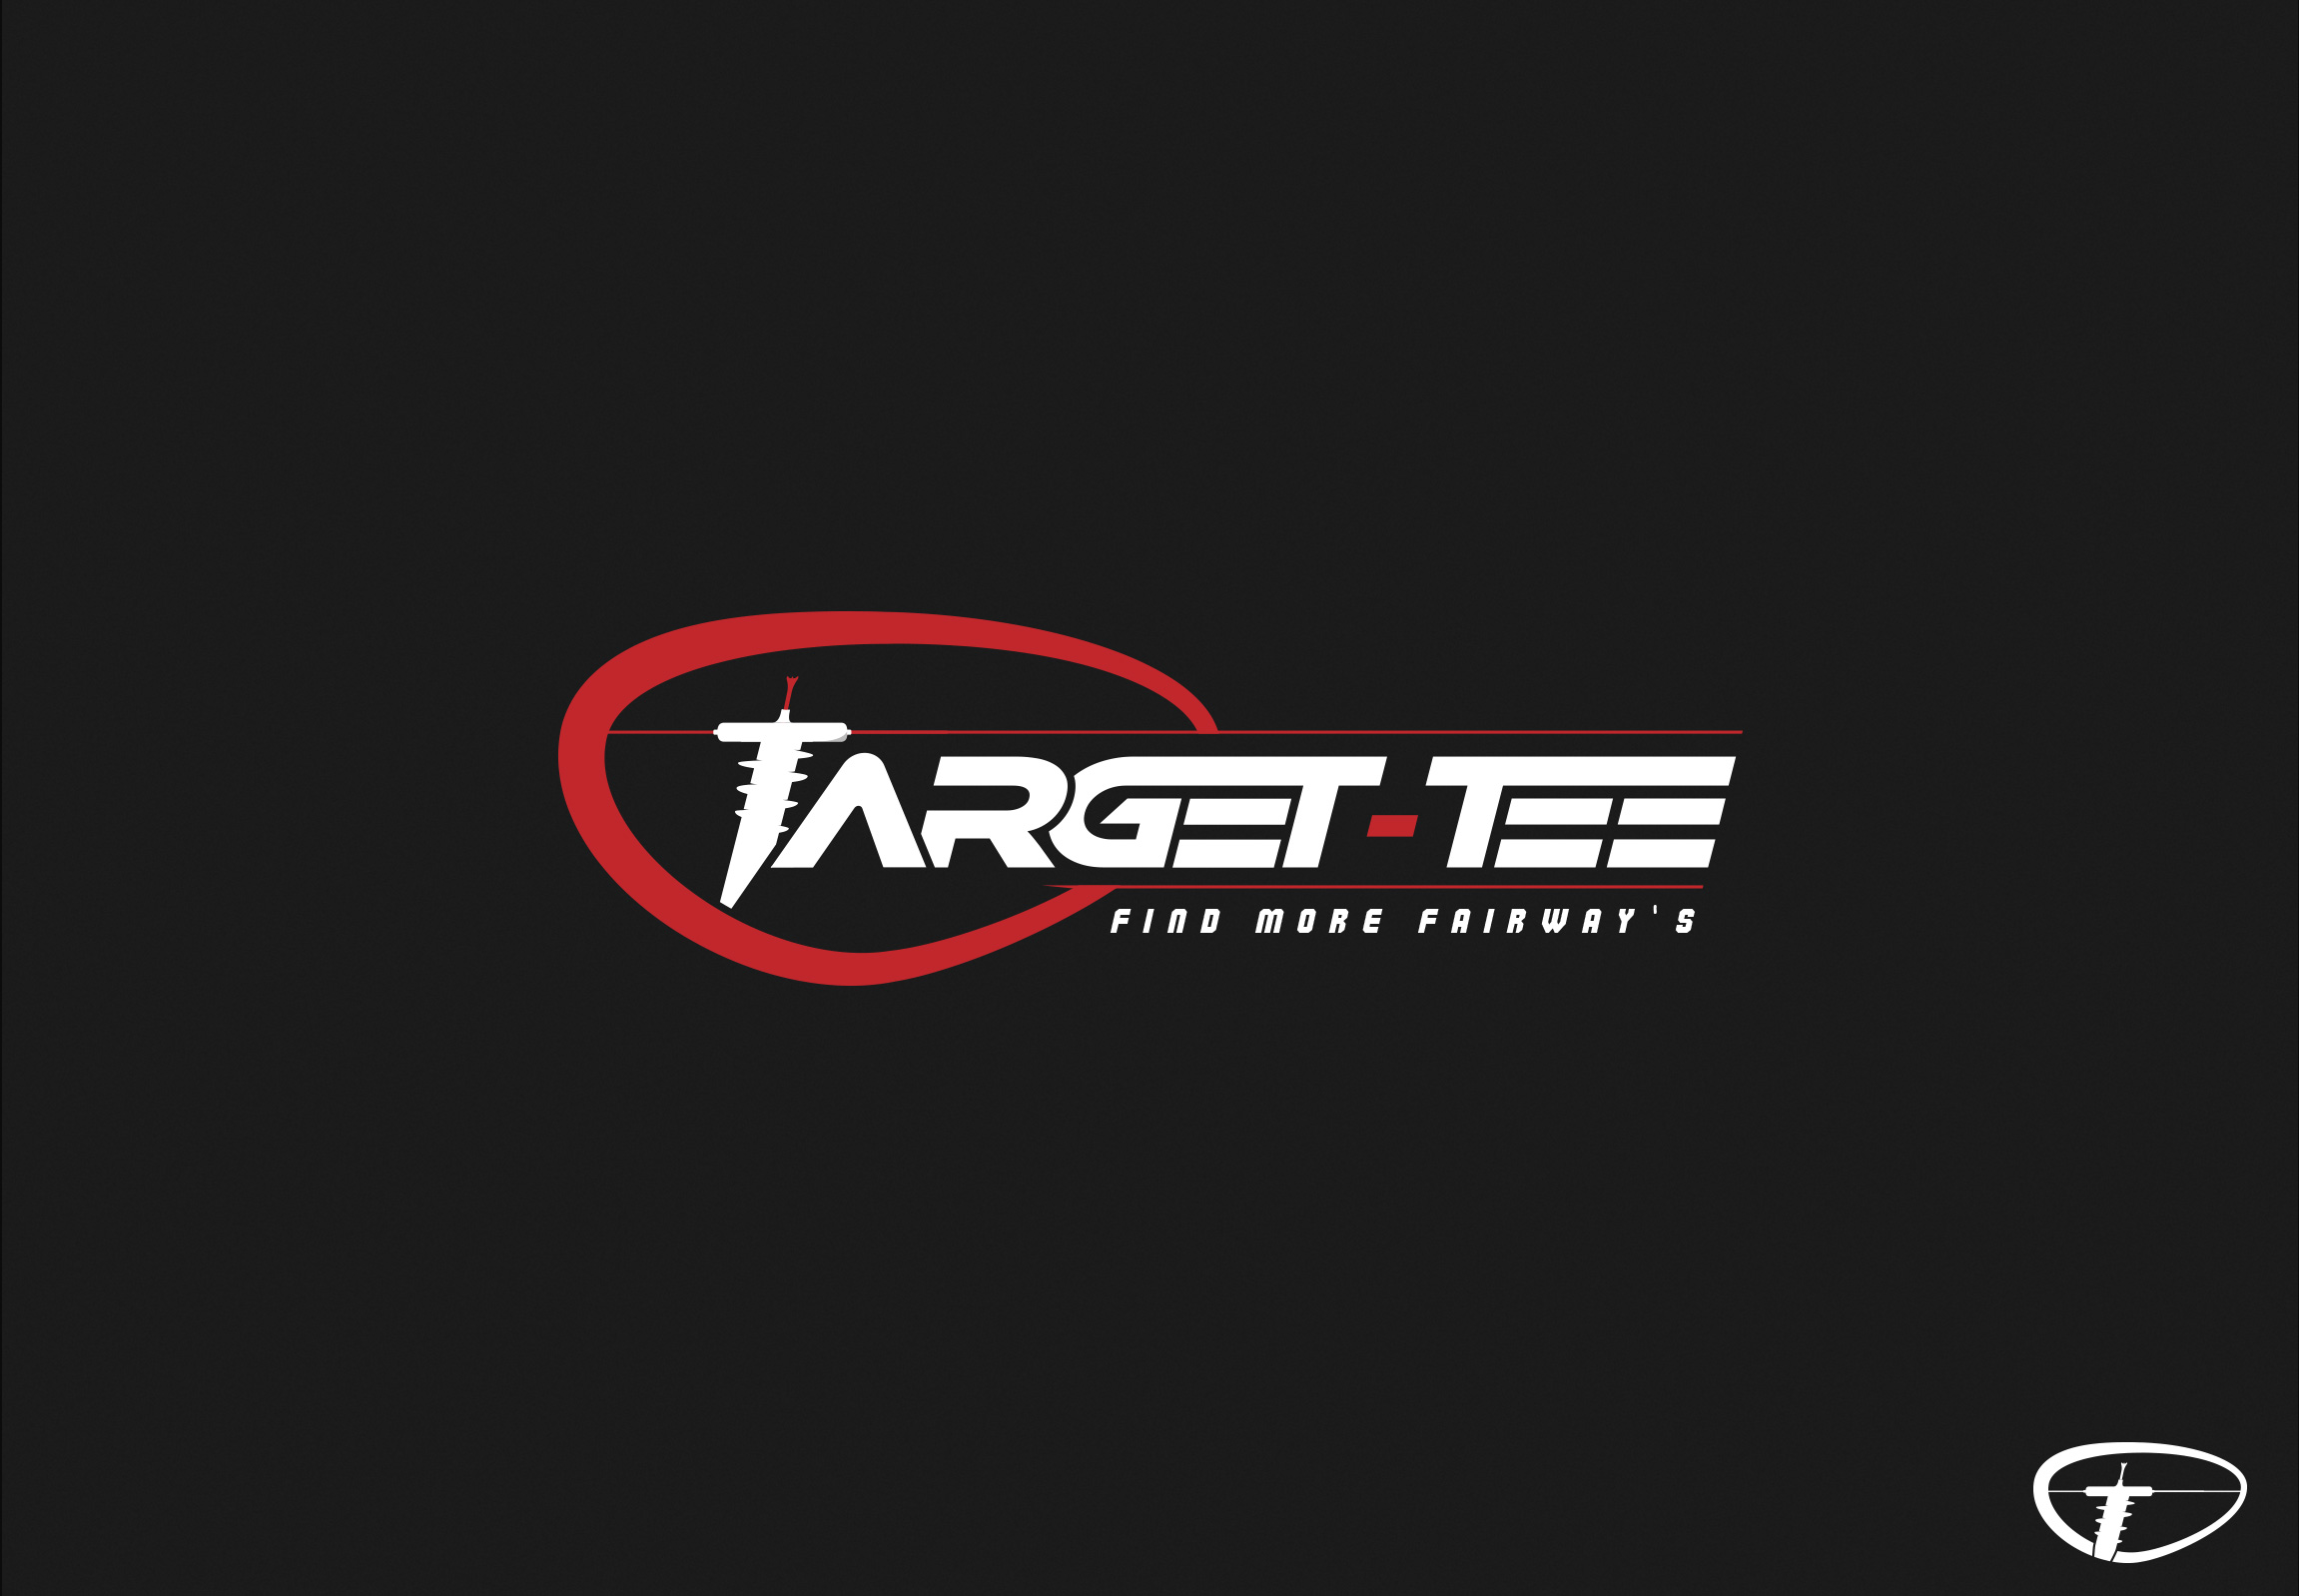 Logo Design by olii - Entry No. 131 in the Logo Design Contest Imaginative Logo Design for TARGET-TEE.